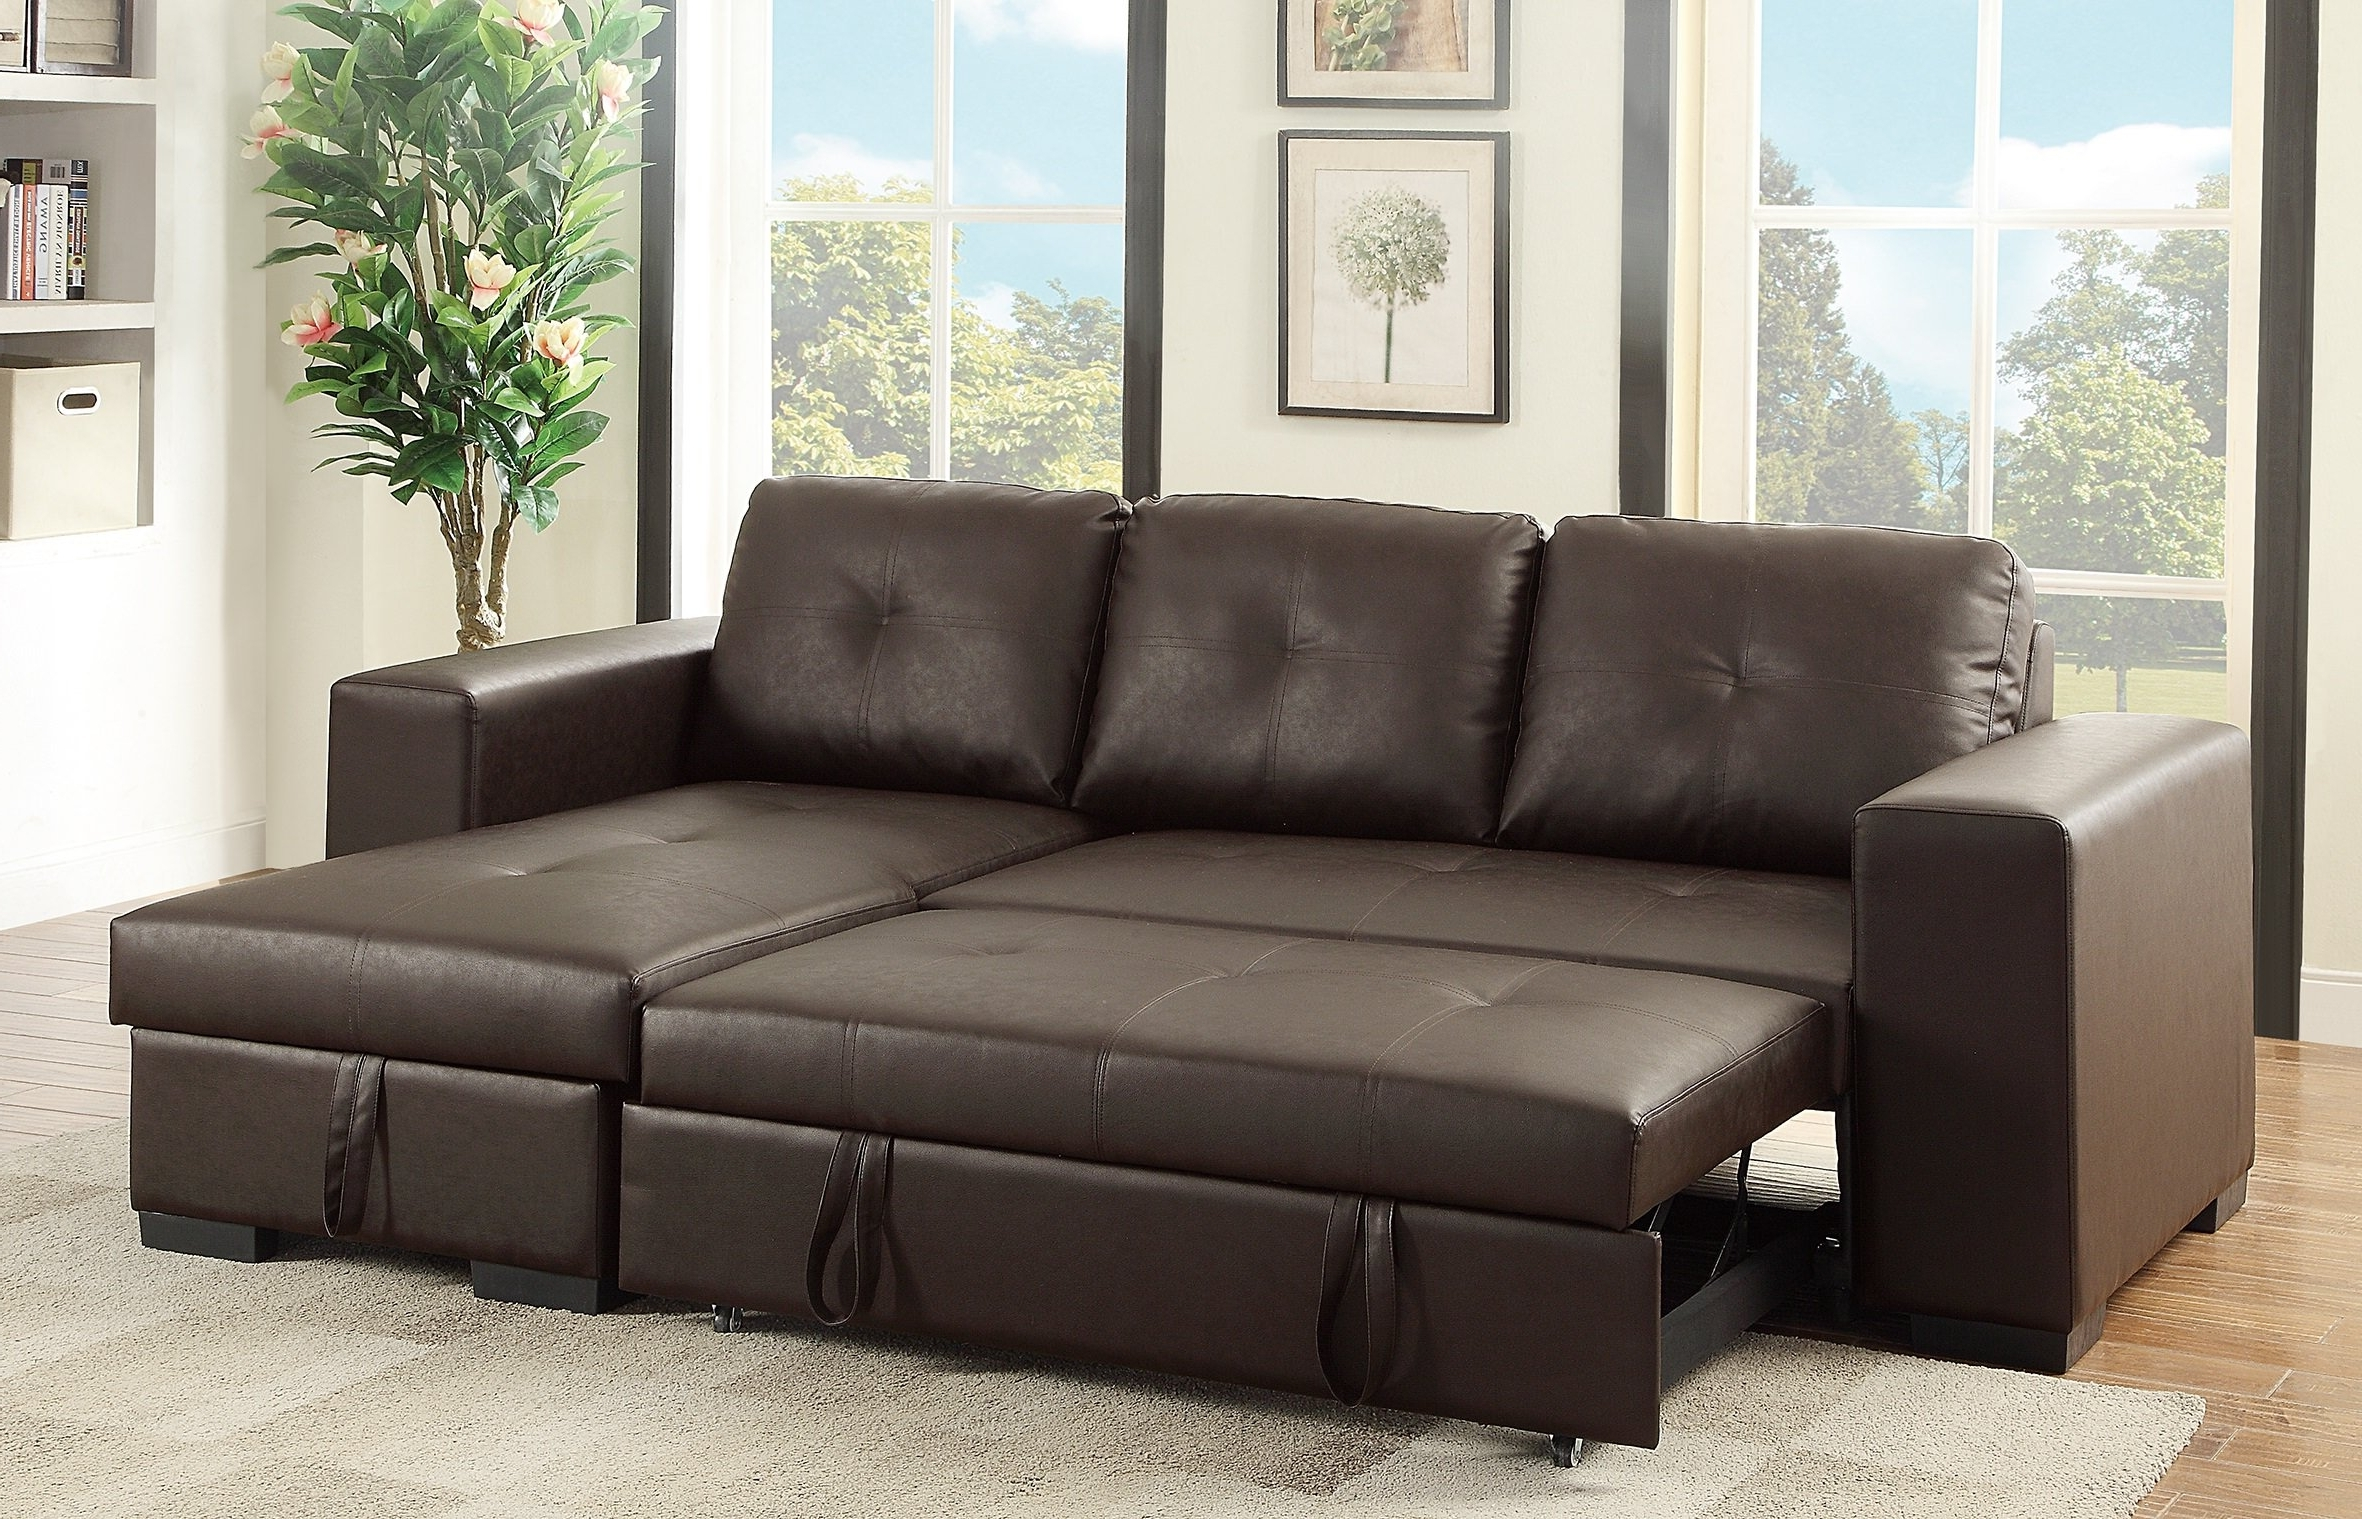 15 Ideas of Convertible Sectional Sofas